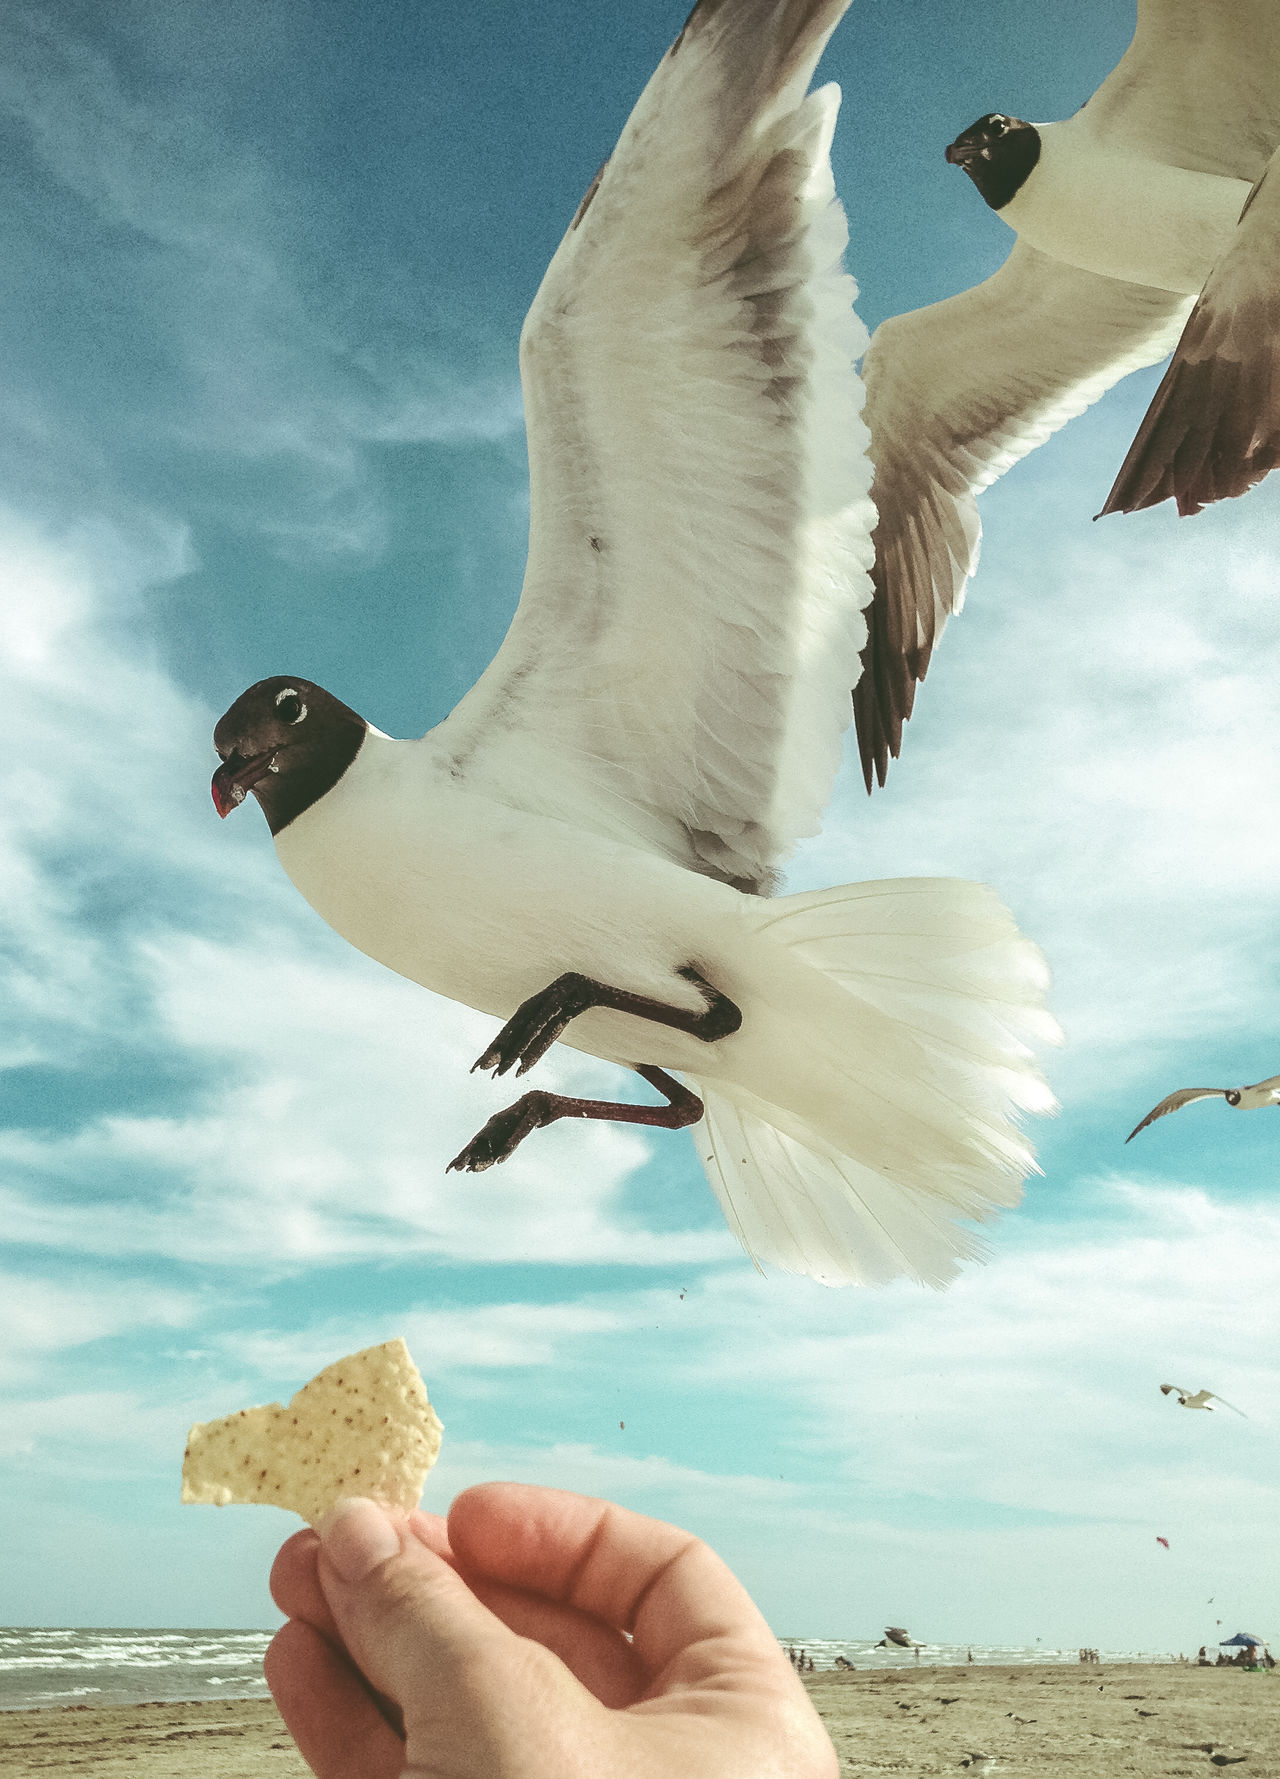 Animal Wildlife Beach Birds Feed The Birds Flying Hand Hands Human Body Part Human Hand Human In Nature Lifestyles Nature Outdoors Personal Perspective Sea Sea Bird Seagull Sky Spread Wings Travel Vacation